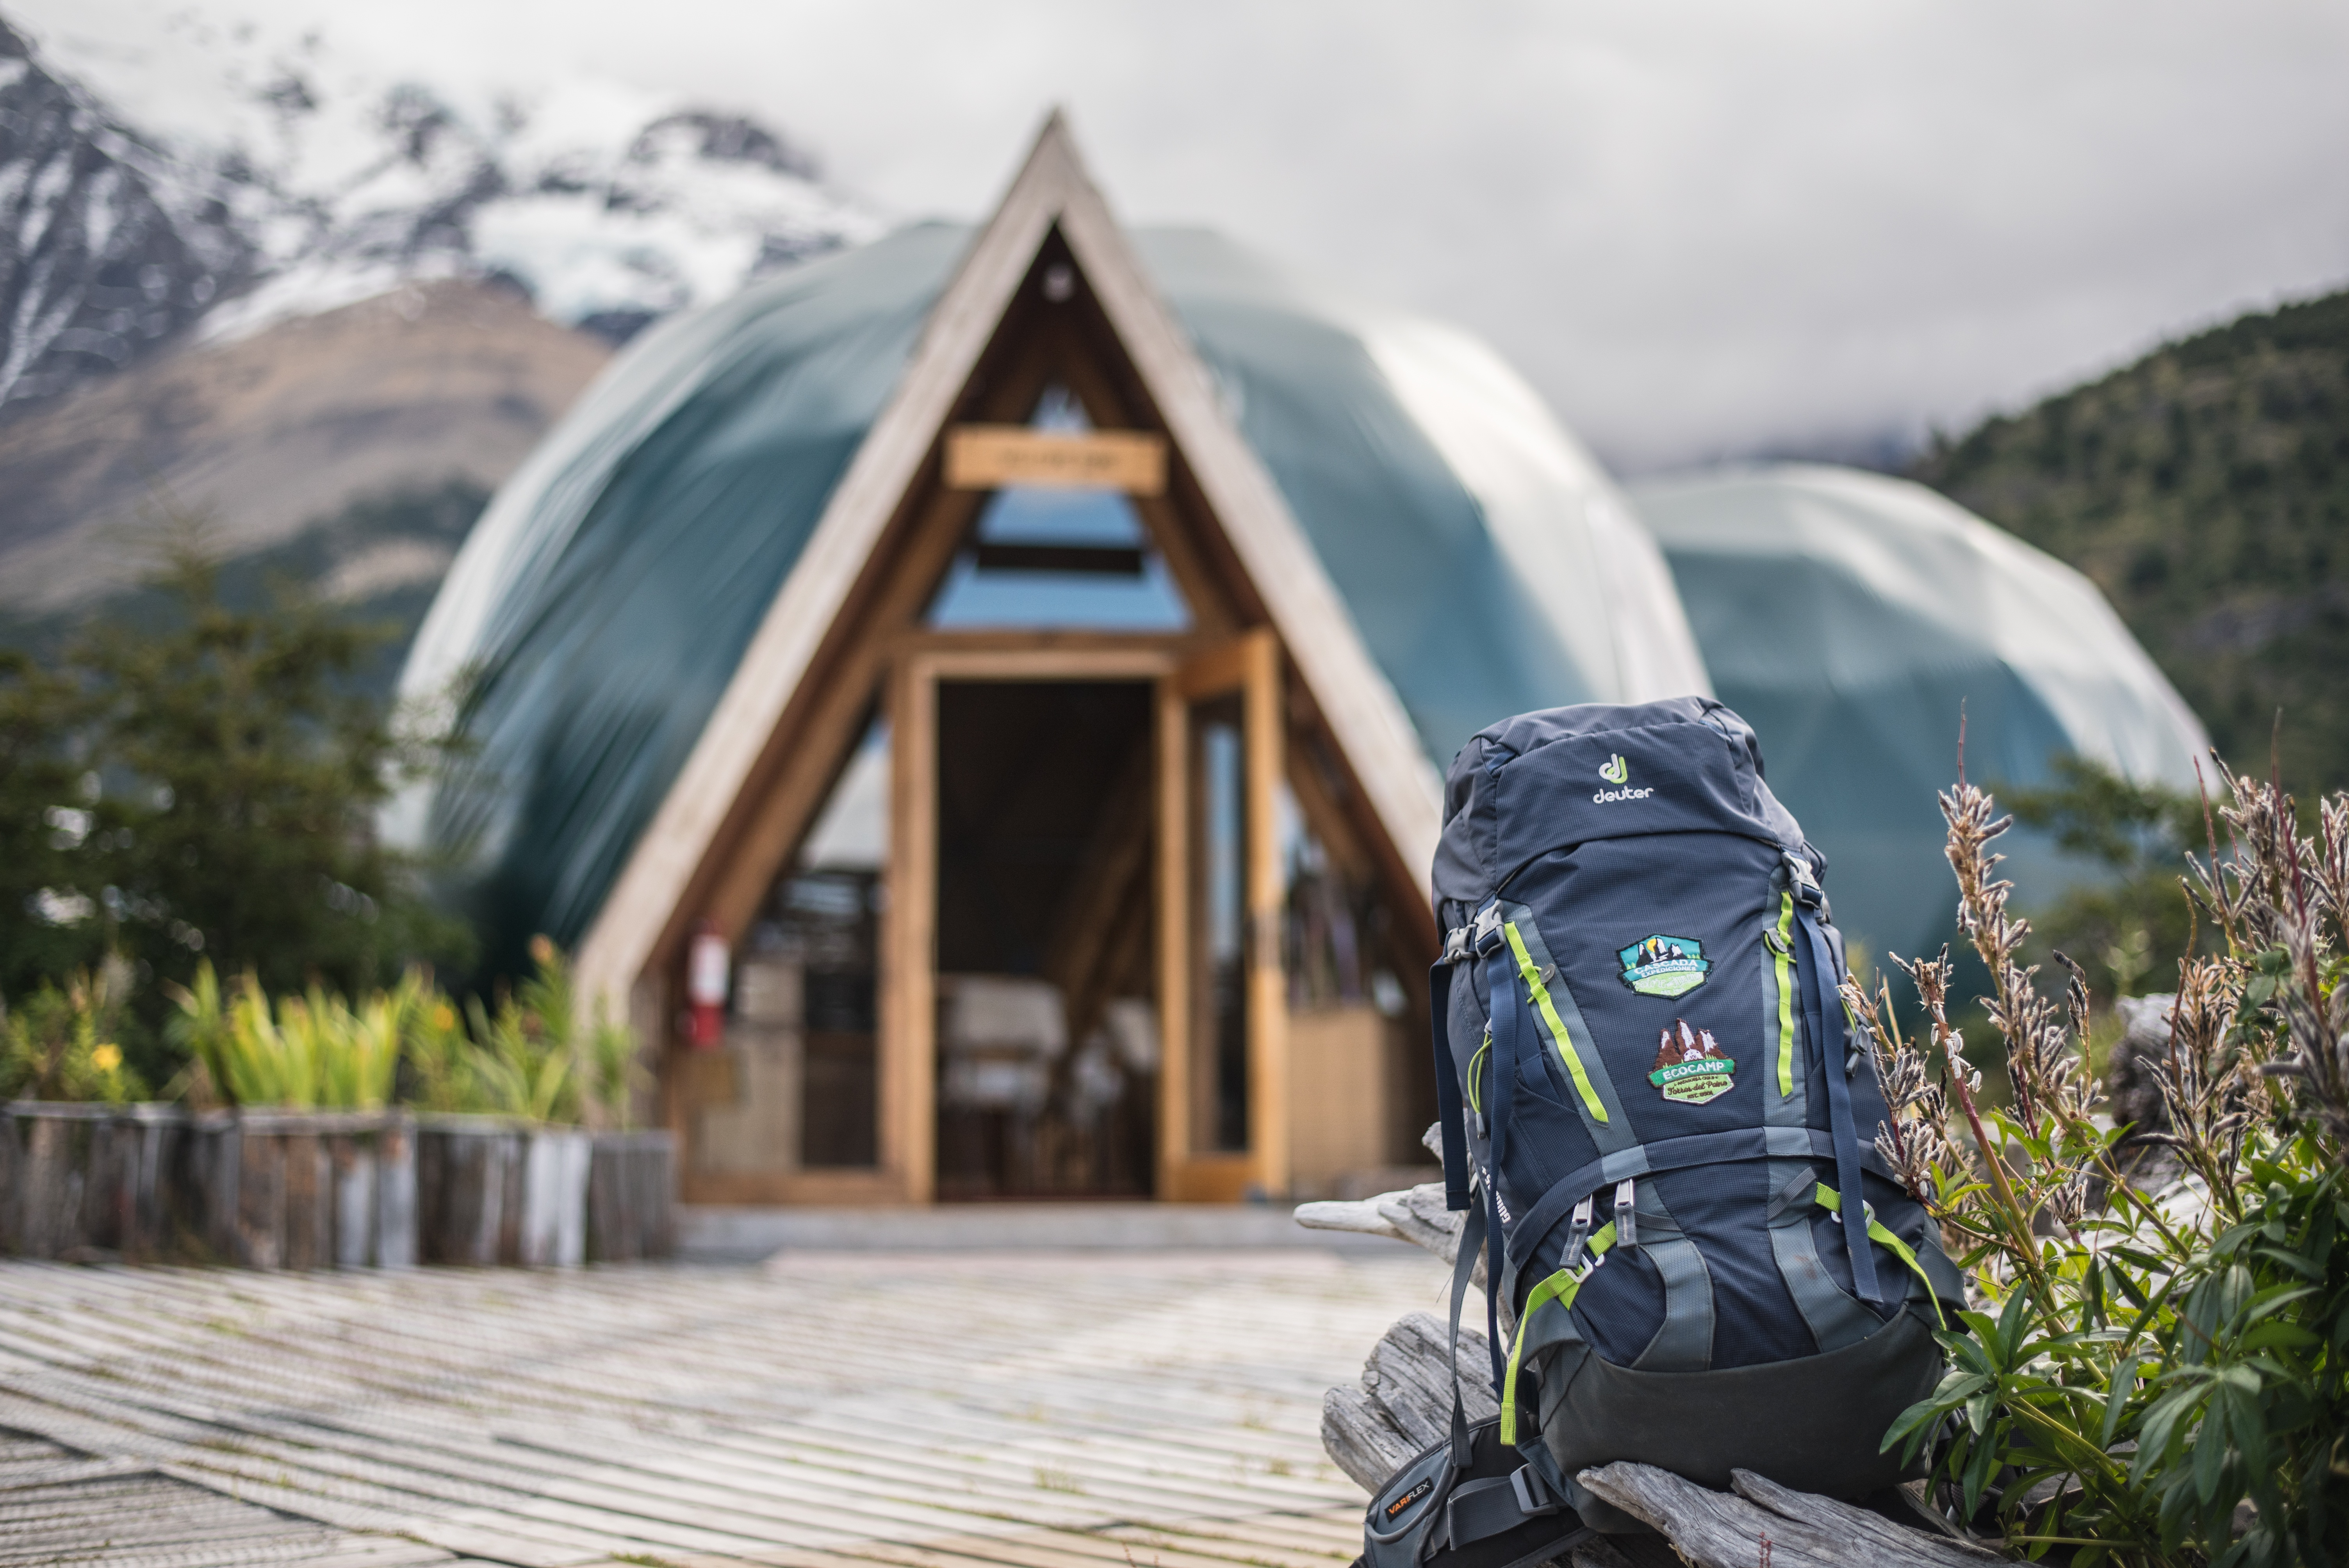 deuter-backpacks-at-ecocamp-patagonia-torres-del-paine-chile_26940663678_o